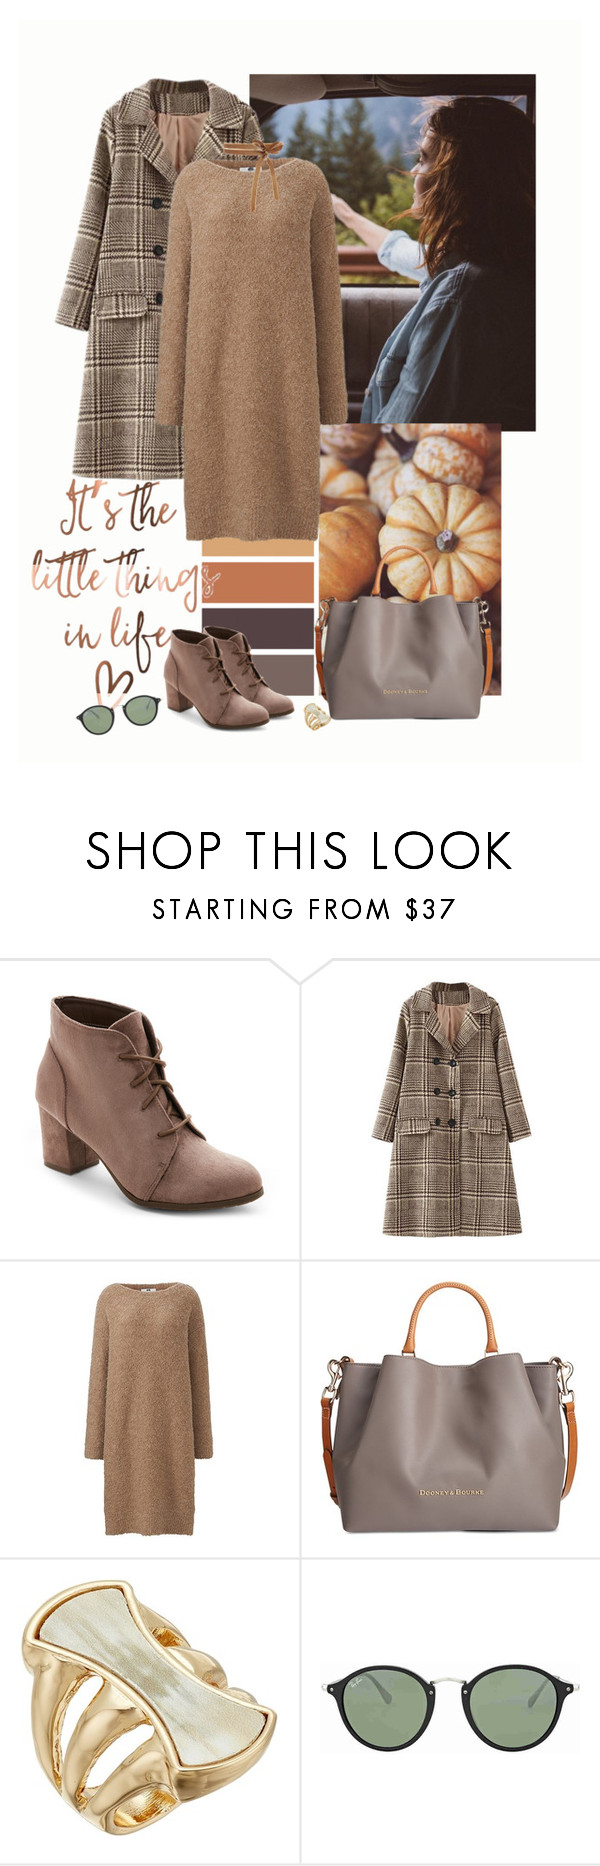 """""""That coat again"""" by fivana ❤ liked on Polyvore featuring Madden Girl, Uniqlo, Dooney & Bourke, Robert Lee Morris and Ray-Ban"""